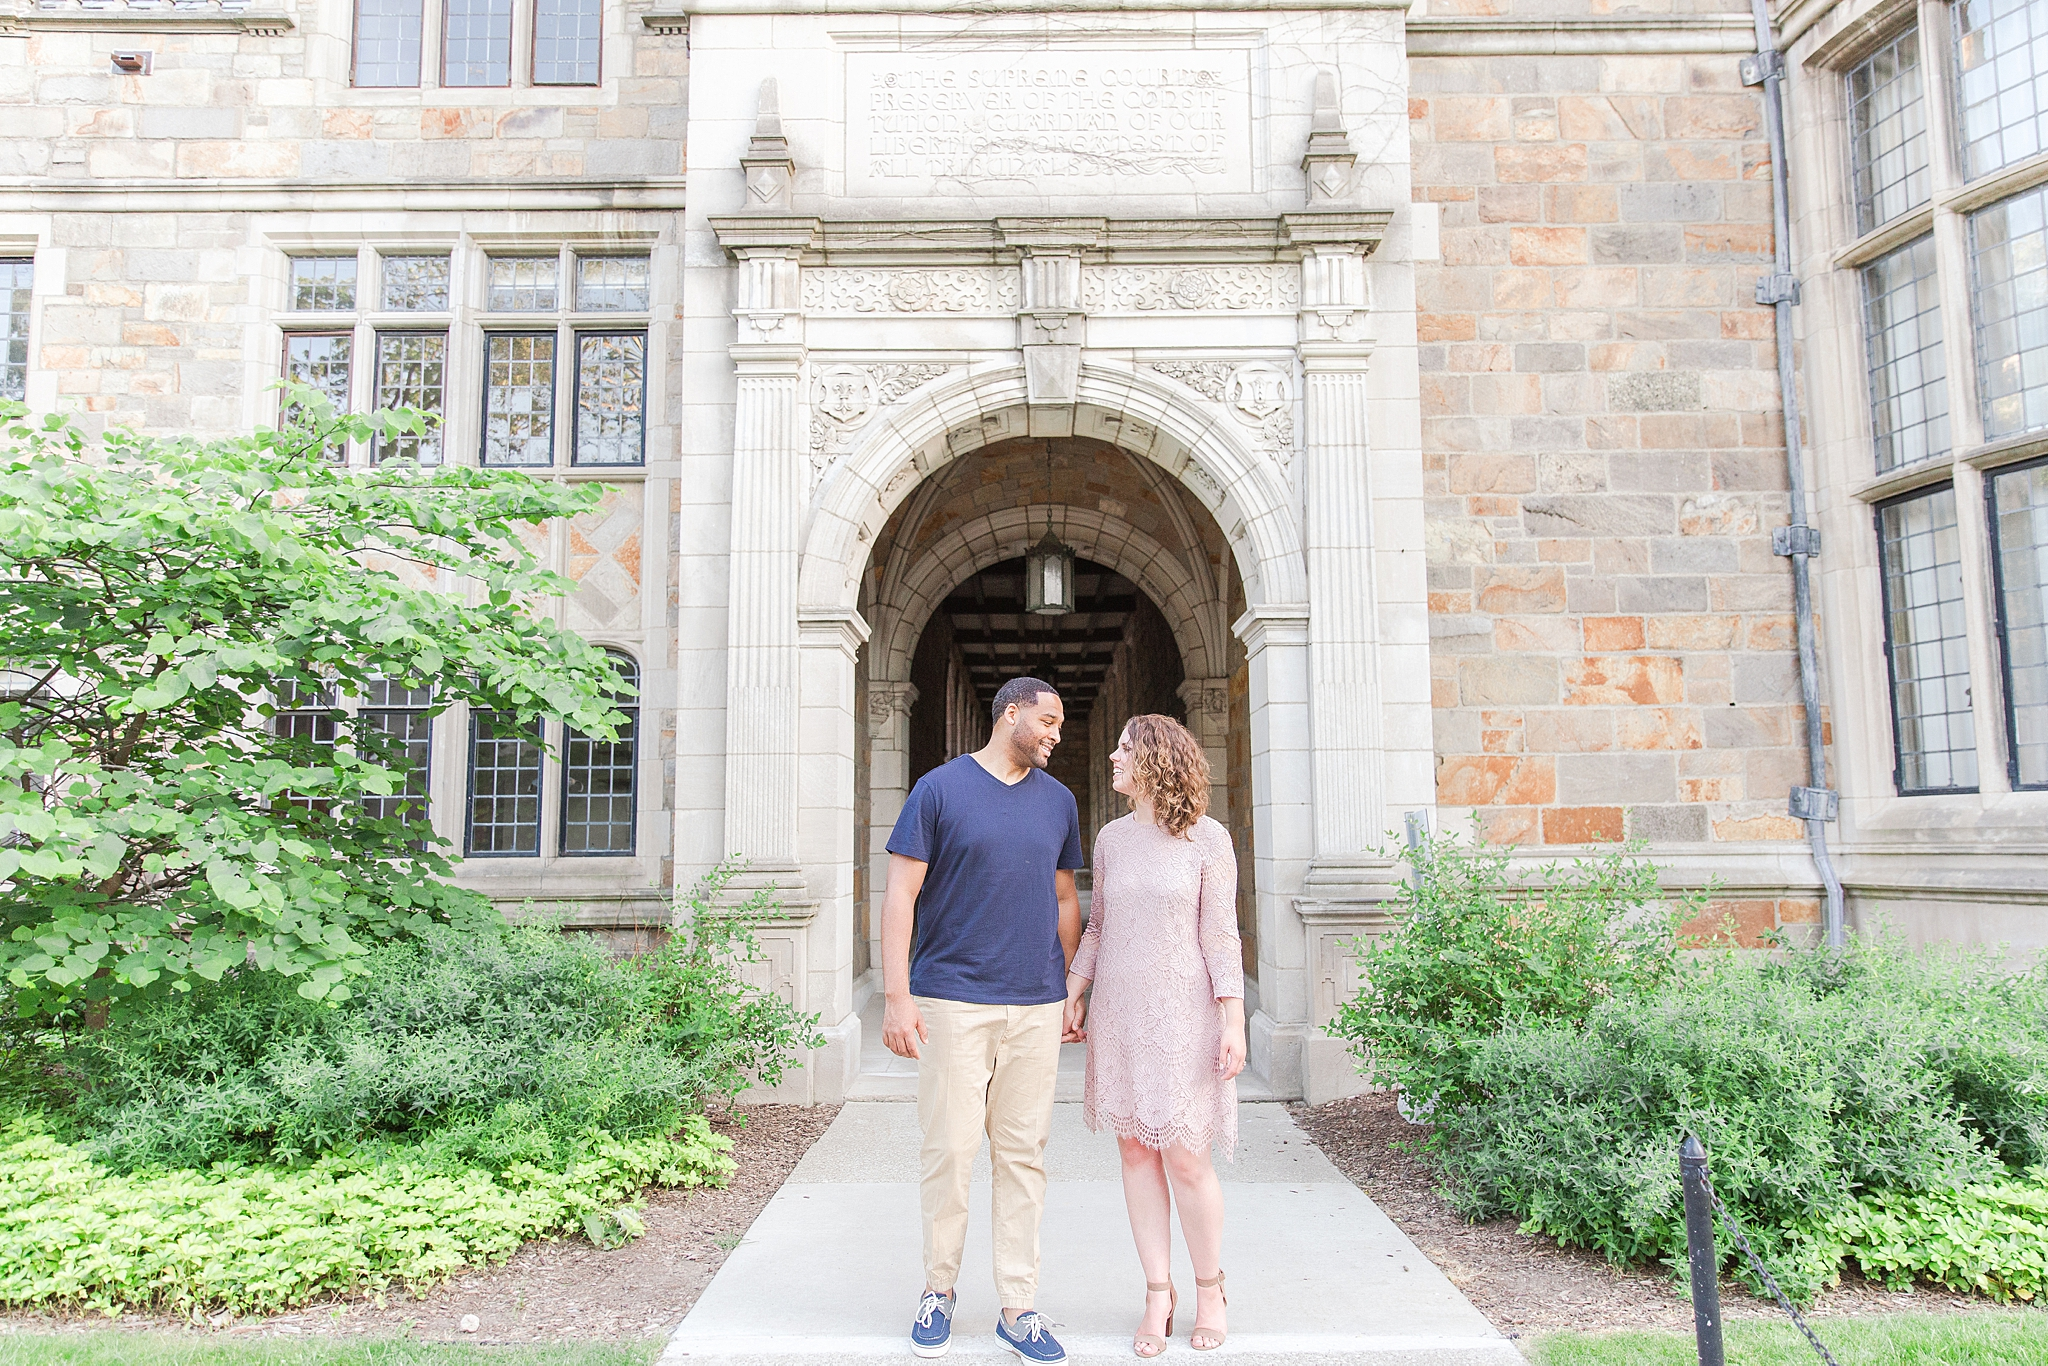 joyful-college-campus-engagement-photography-at-university-of-michigan-in-ann-arbor-mi-by-courtney-carolyn-photography_0002.jpg